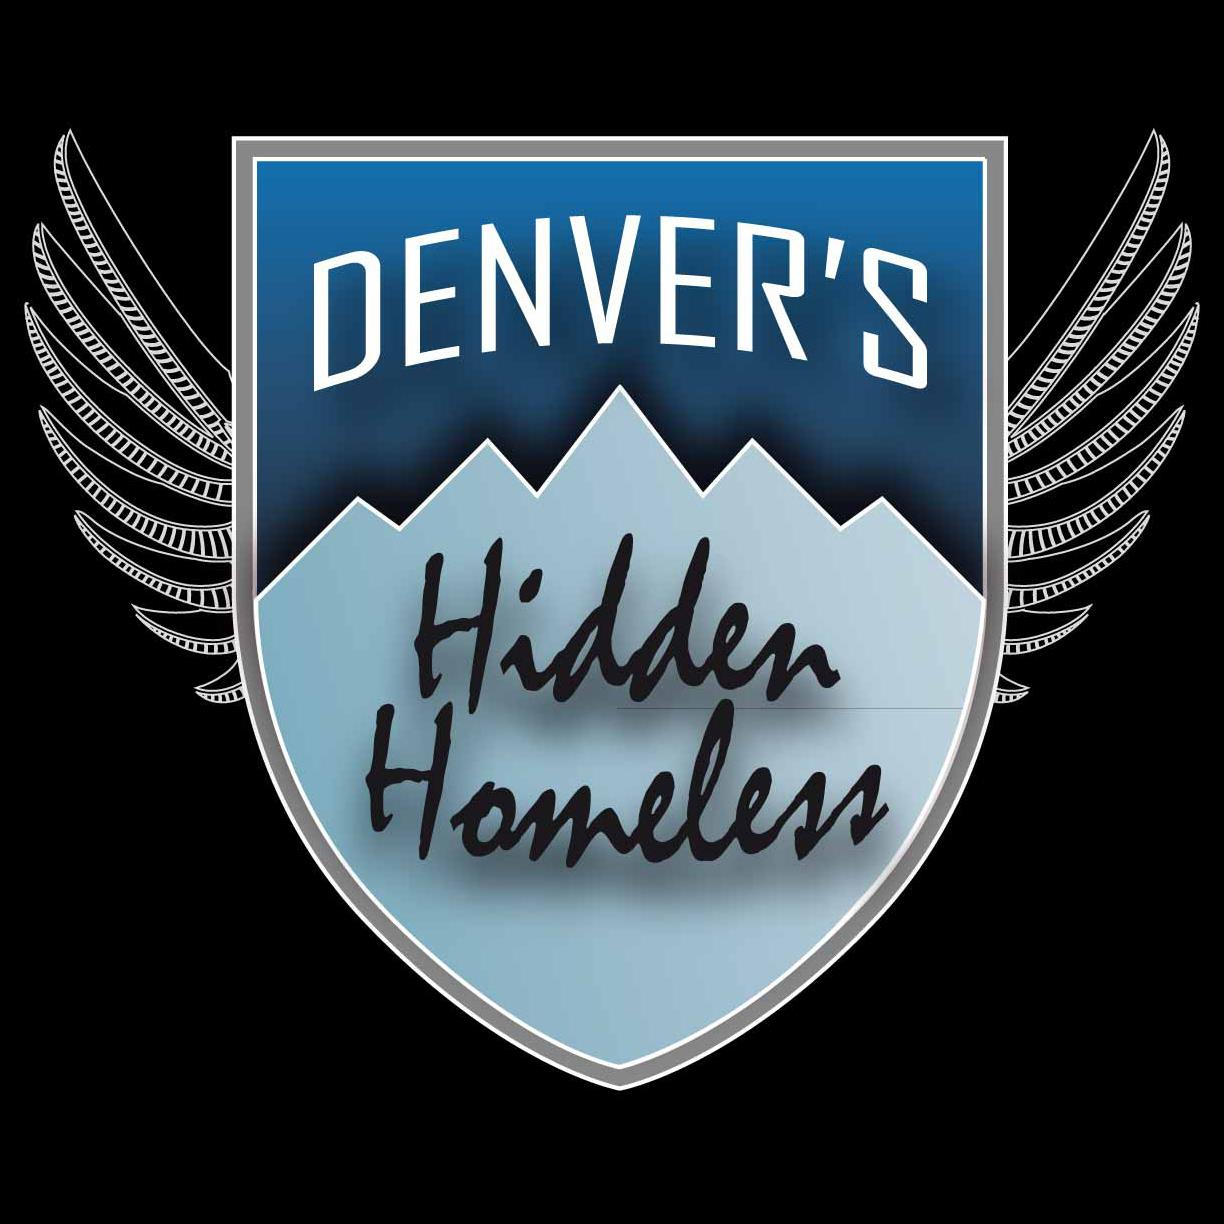 Denver's Hidden Homeless